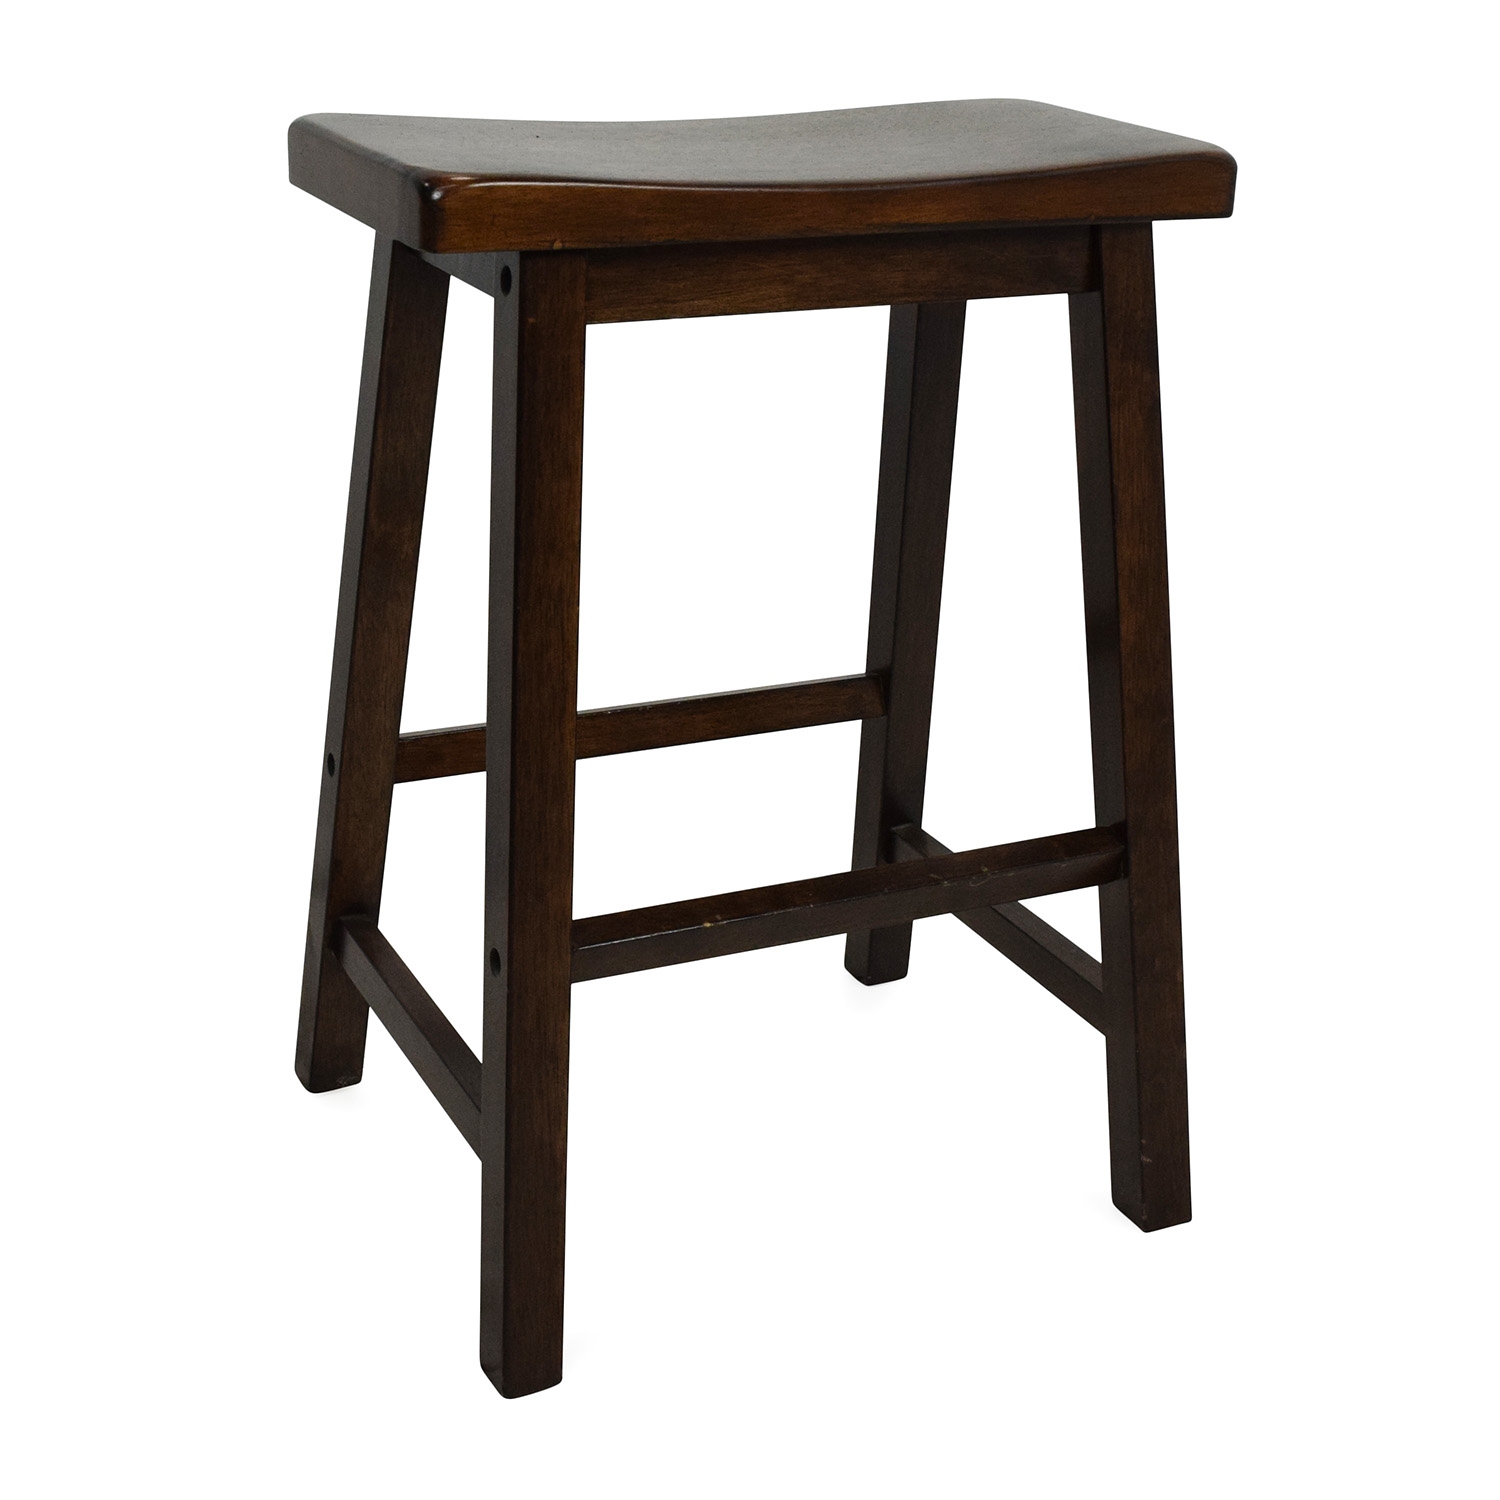 Ashley Furniture Tables And Chairs: Ashley Furniture Ashley Furniture Kitchen Table